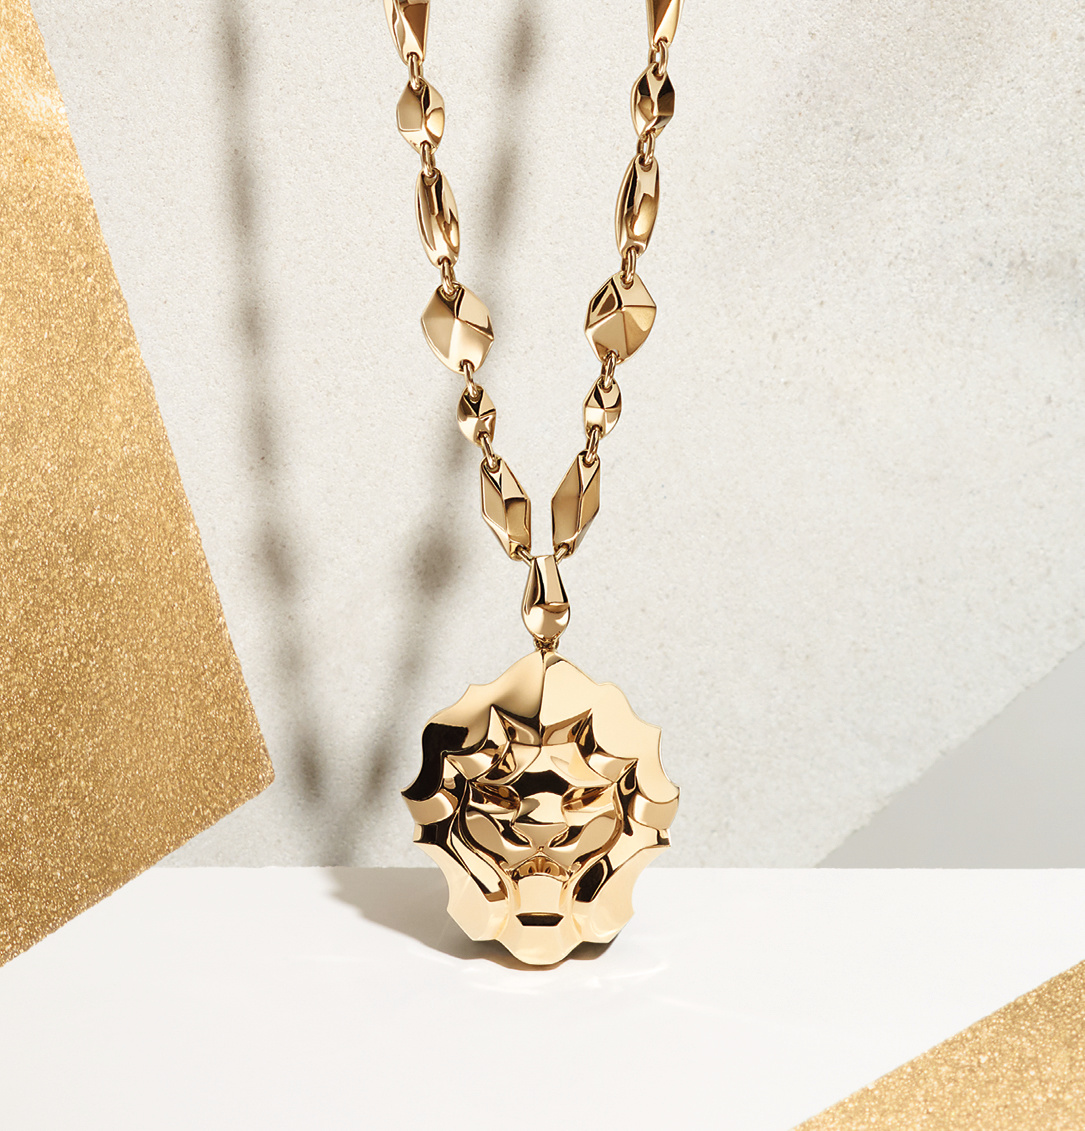 CHANEL - JOAILLERIE